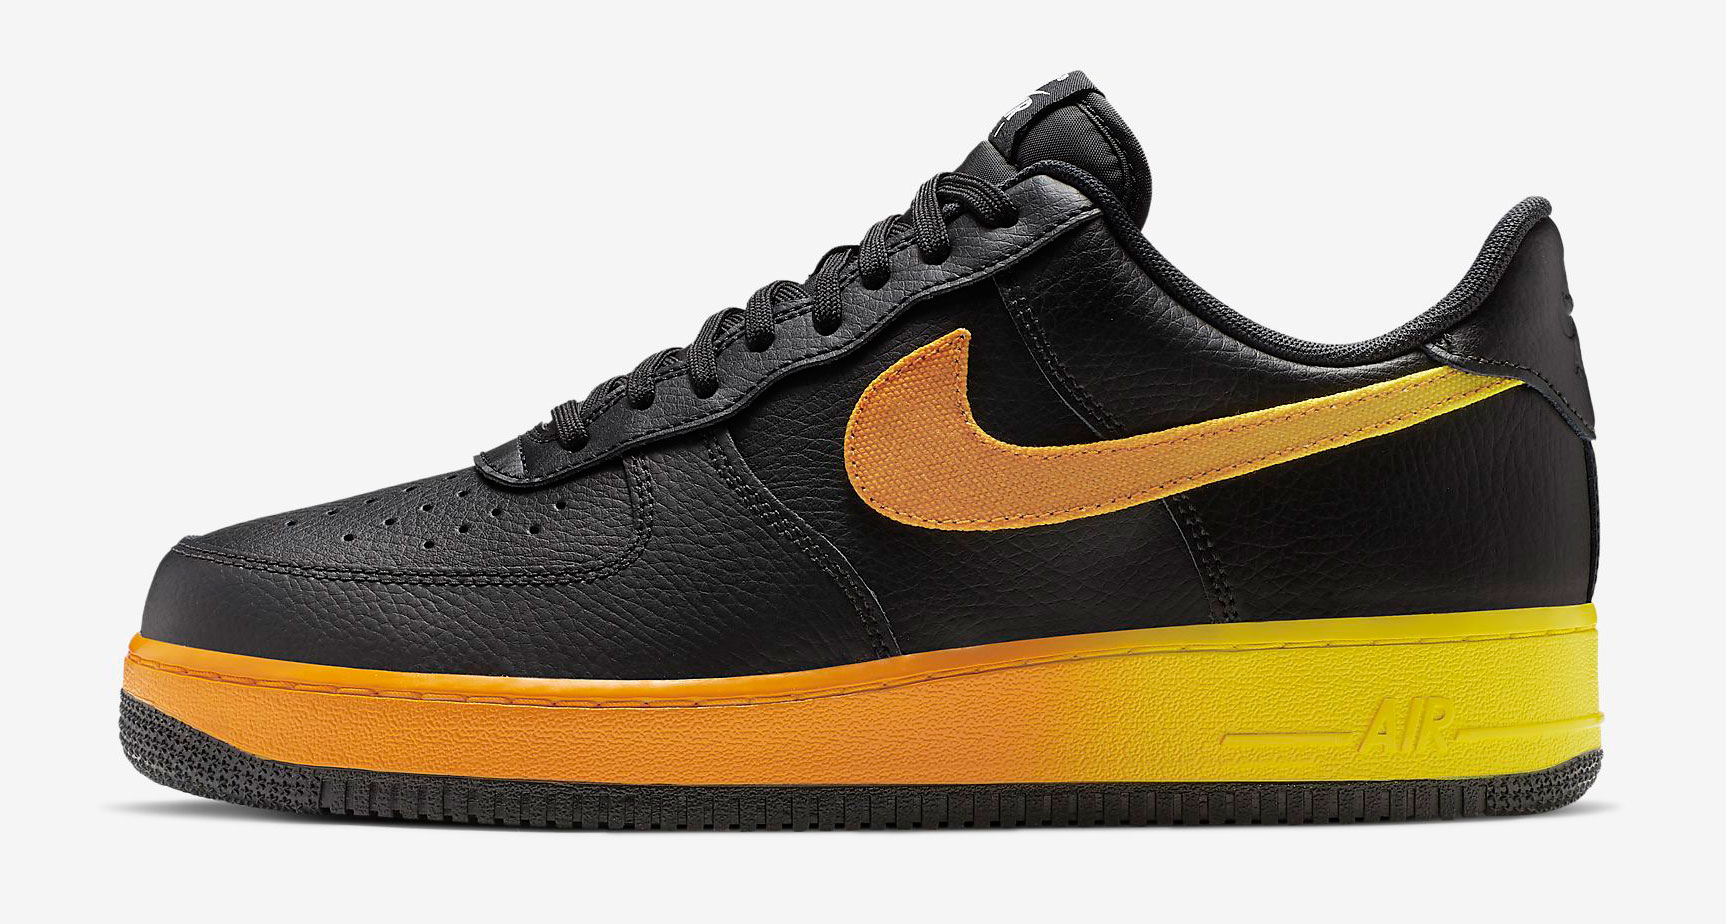 nike-air-force-1-low-gradient-black-yellow-orange-release-date-where-to-buy